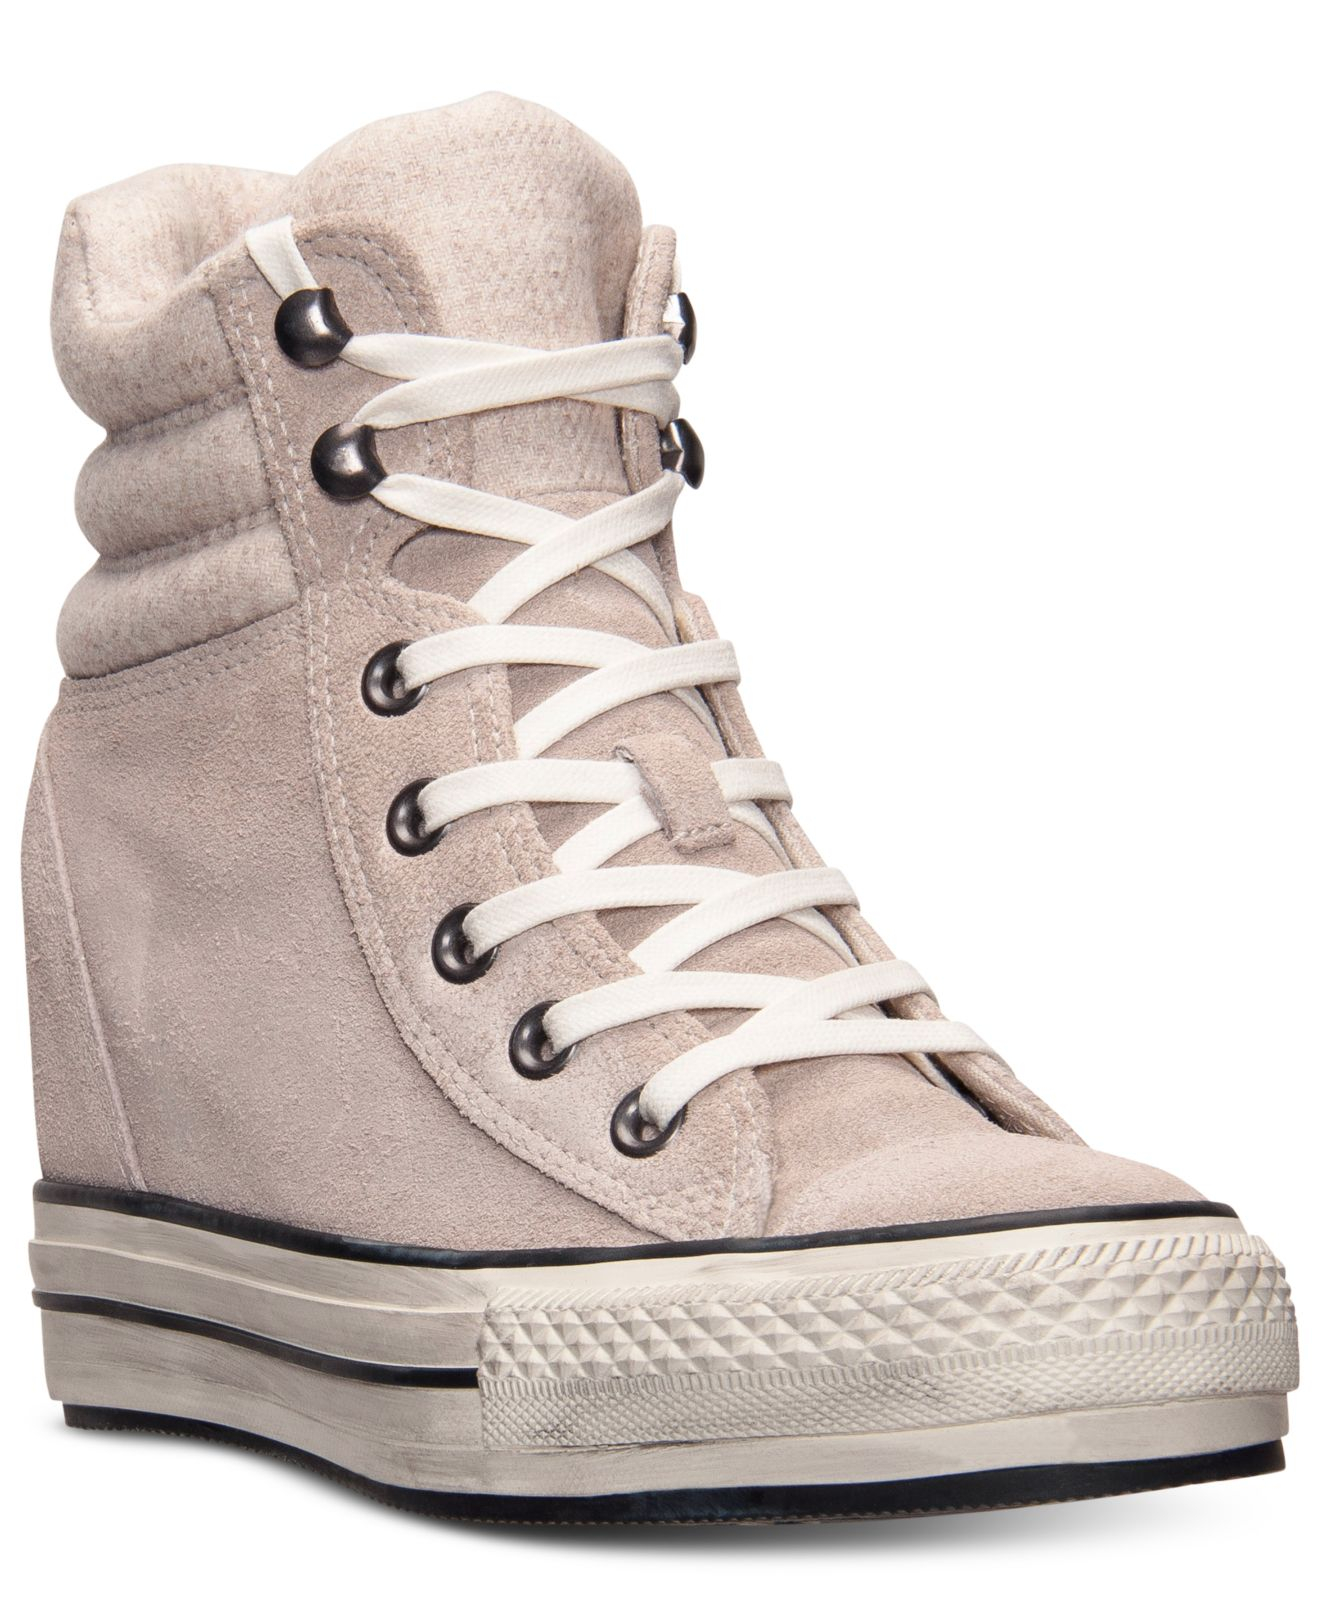 482f2c18e79 Gallery. Previously sold at  Macy s · Women s Converse Platform Women s  Check Sneakers ...